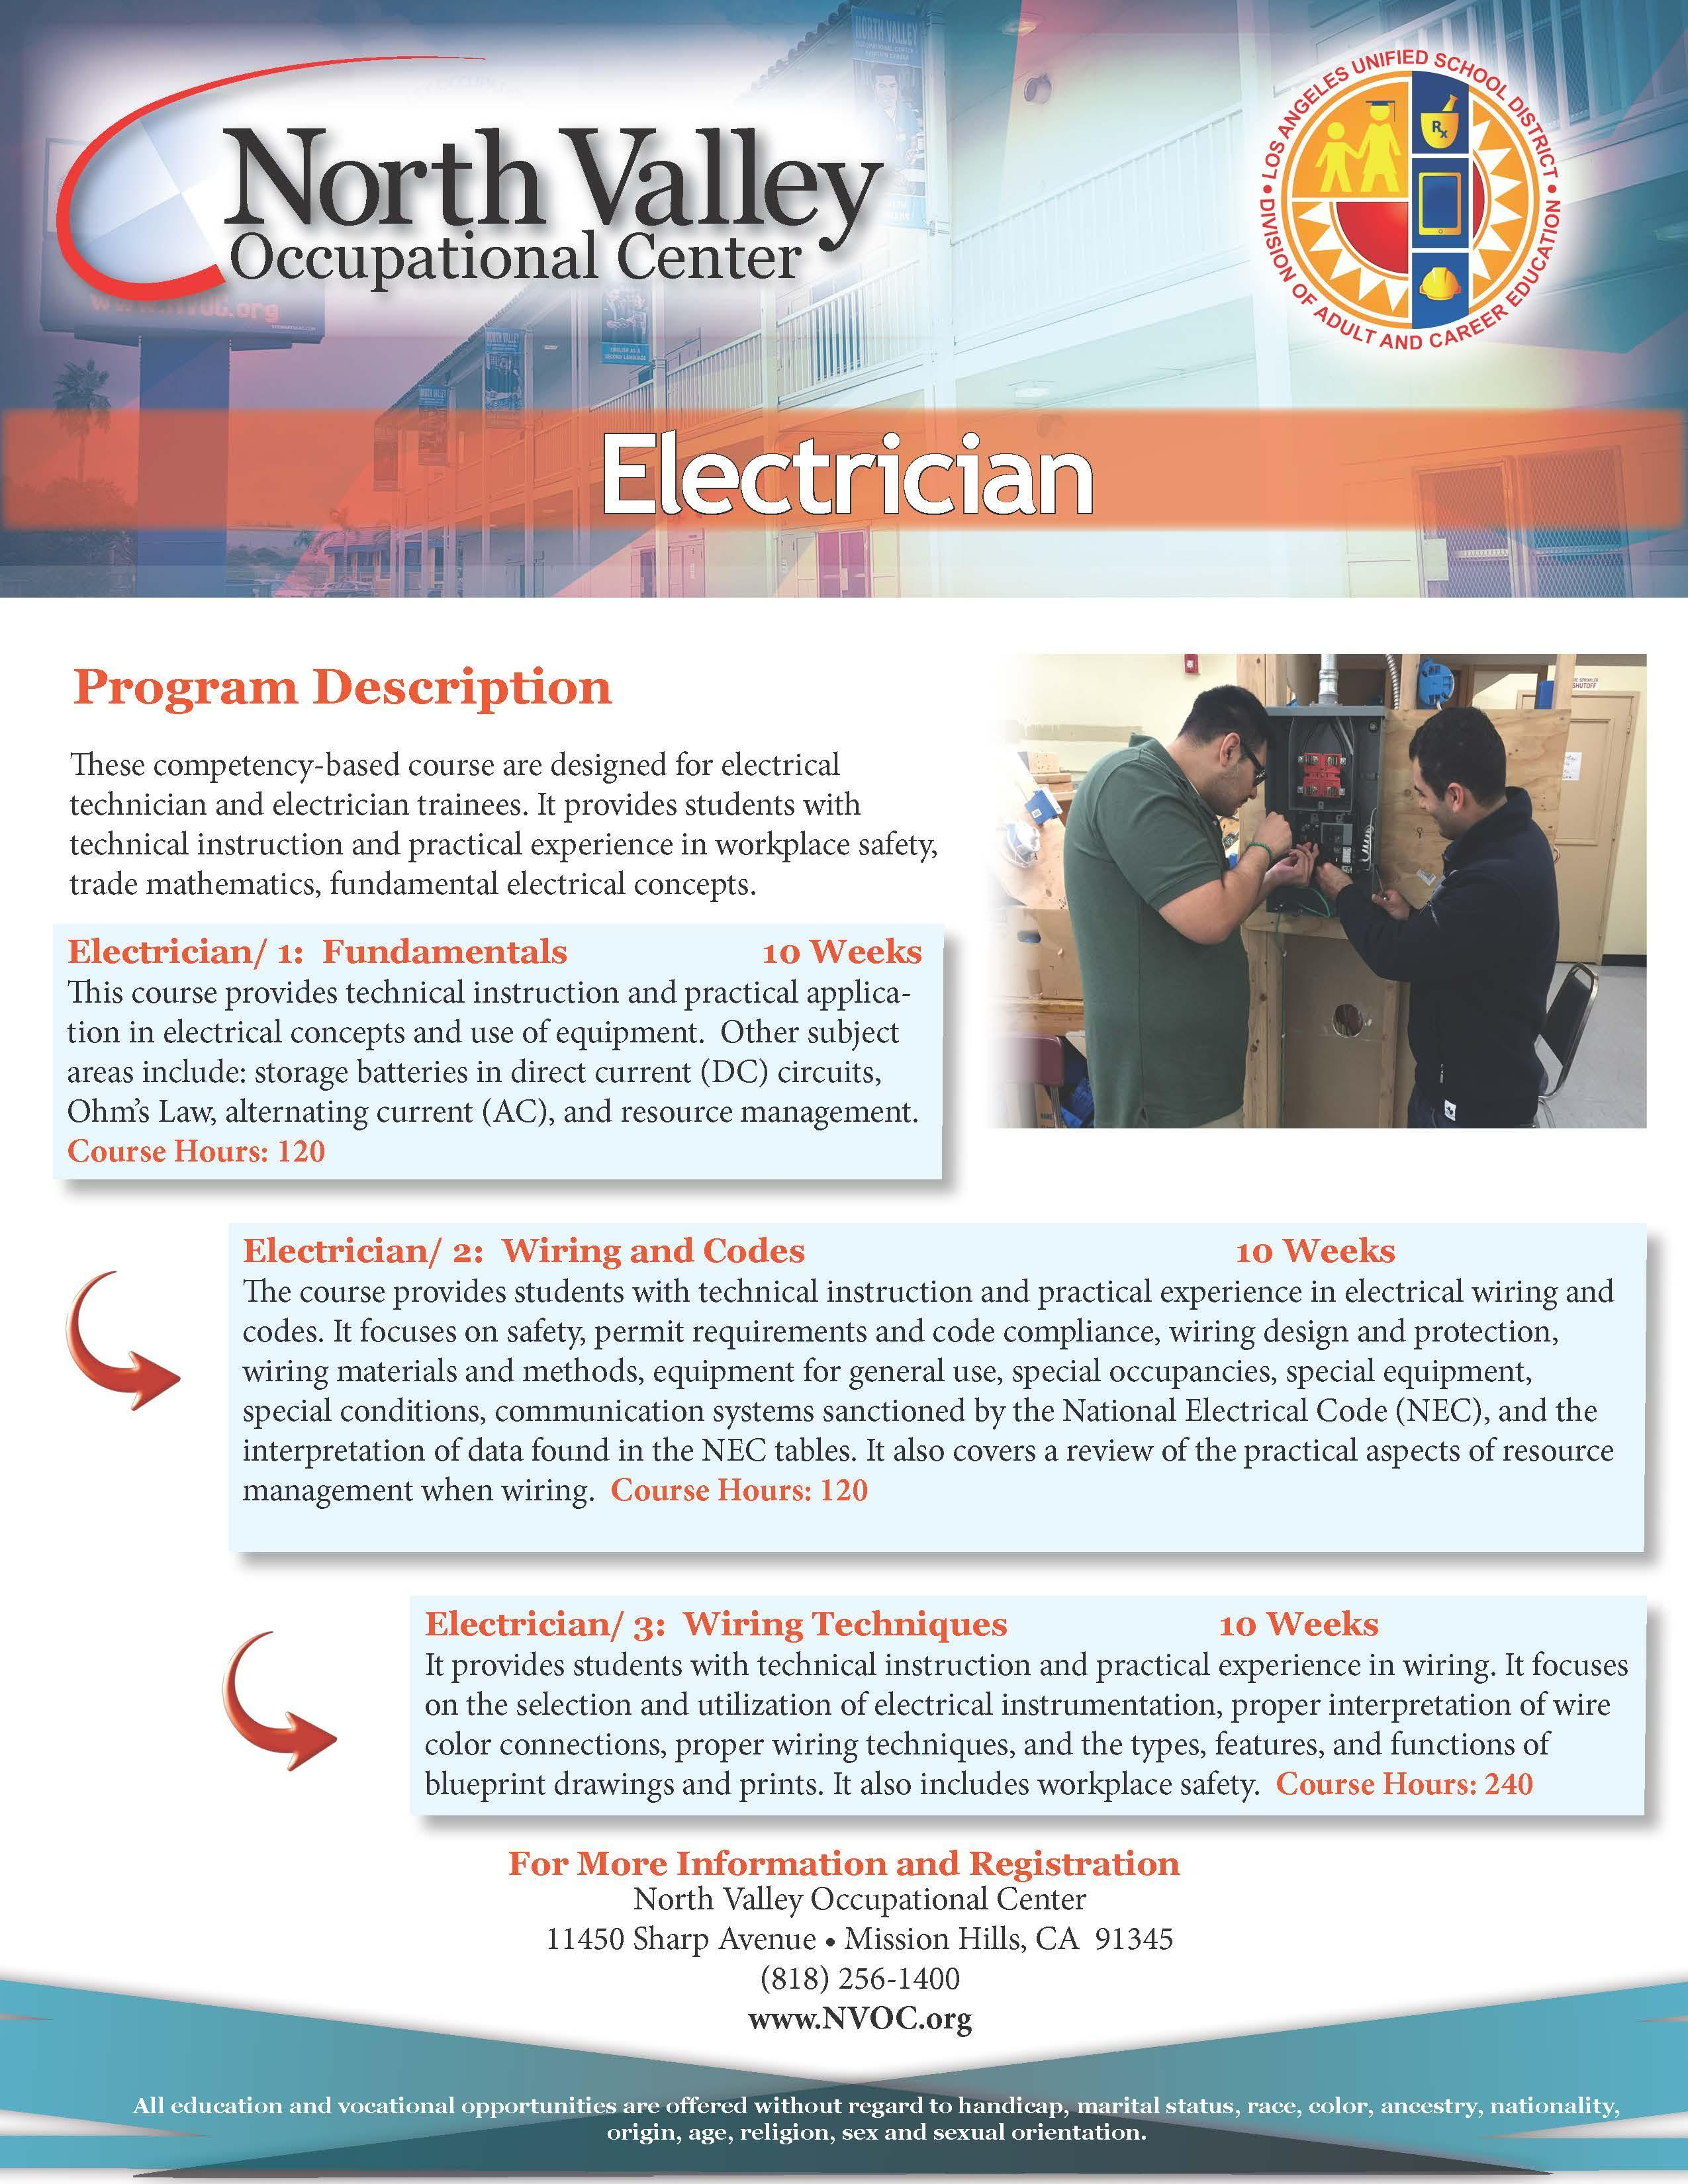 Electrician Industrial Programs North Valley Occupational Center Electrical Wiring Course Information Flyer Download